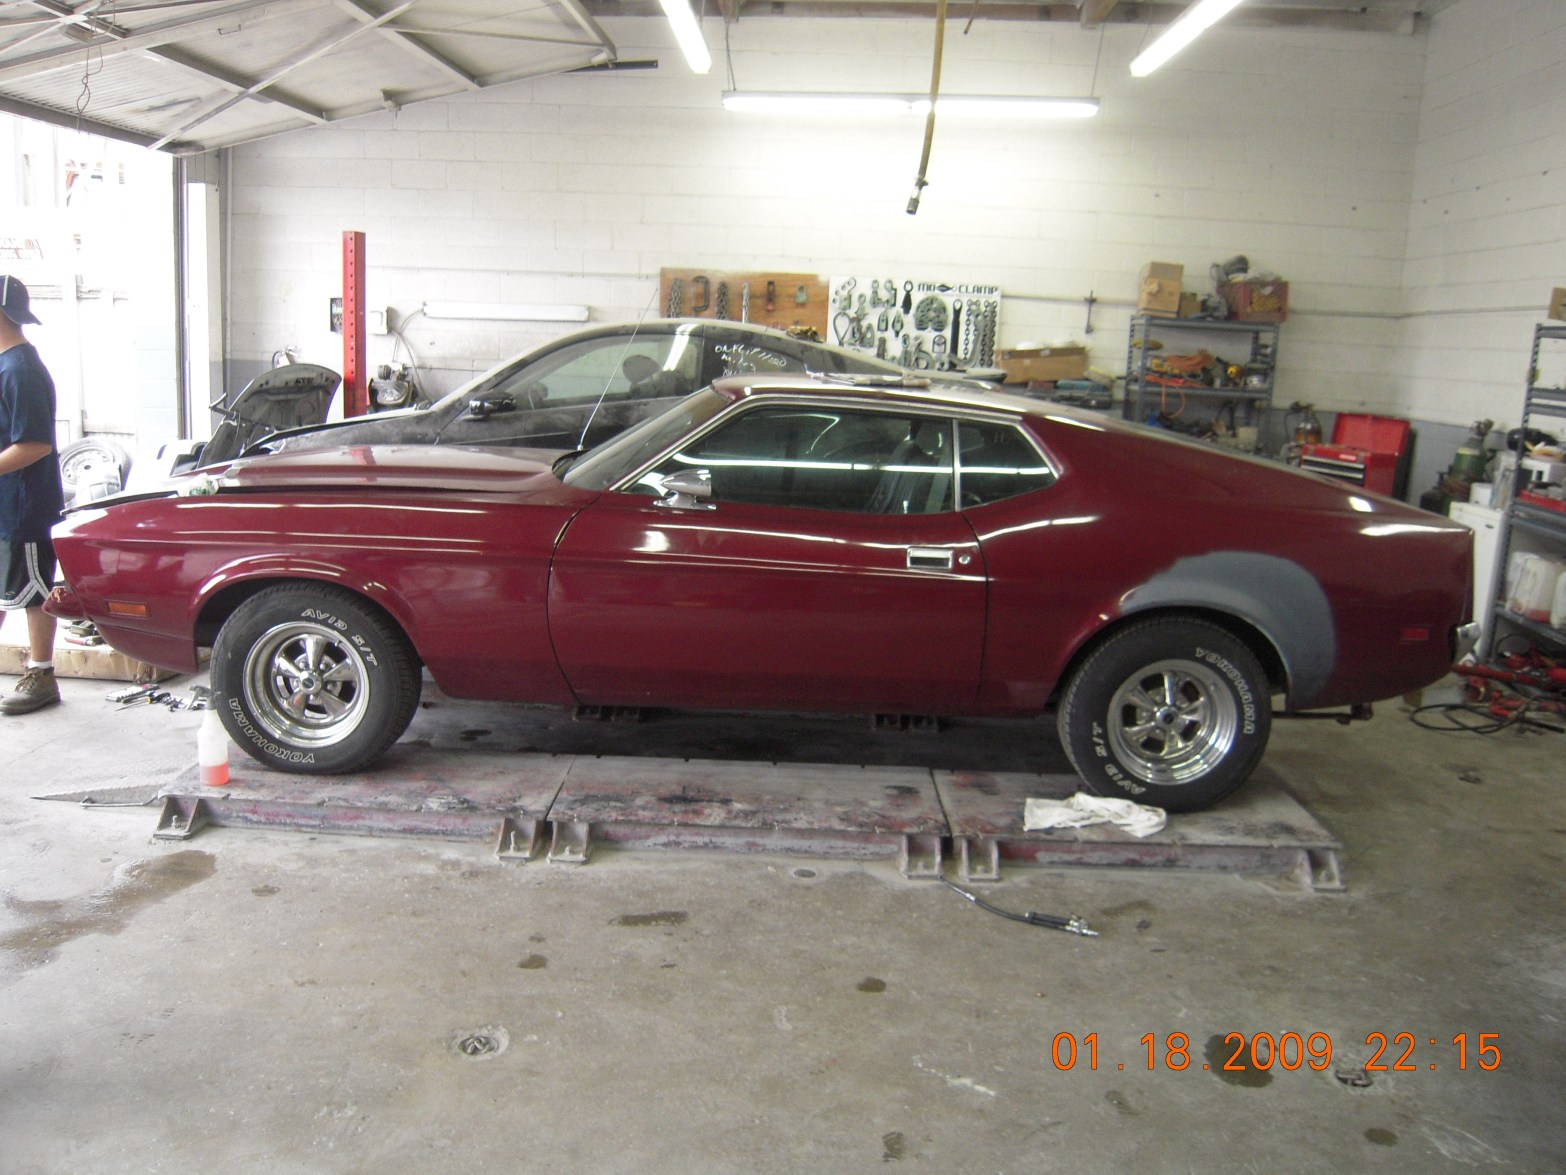 west-coast-body-and-paint-red-1972-mustang-fastback-1